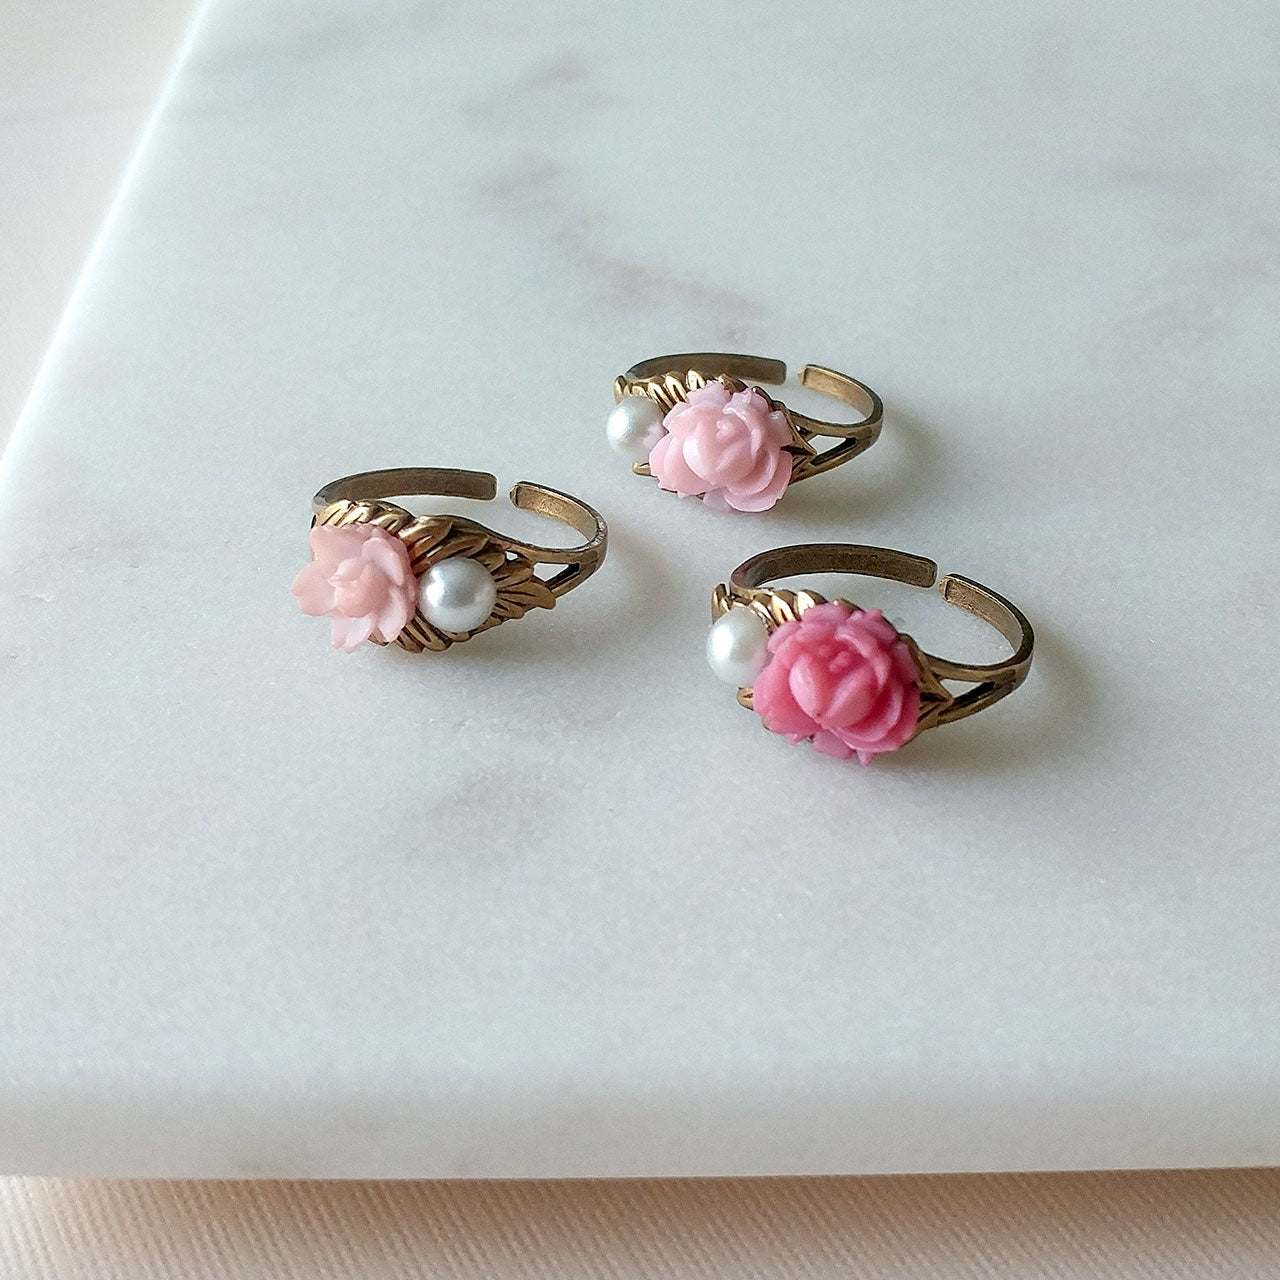 Sakura ring in dark pink (SD1367)